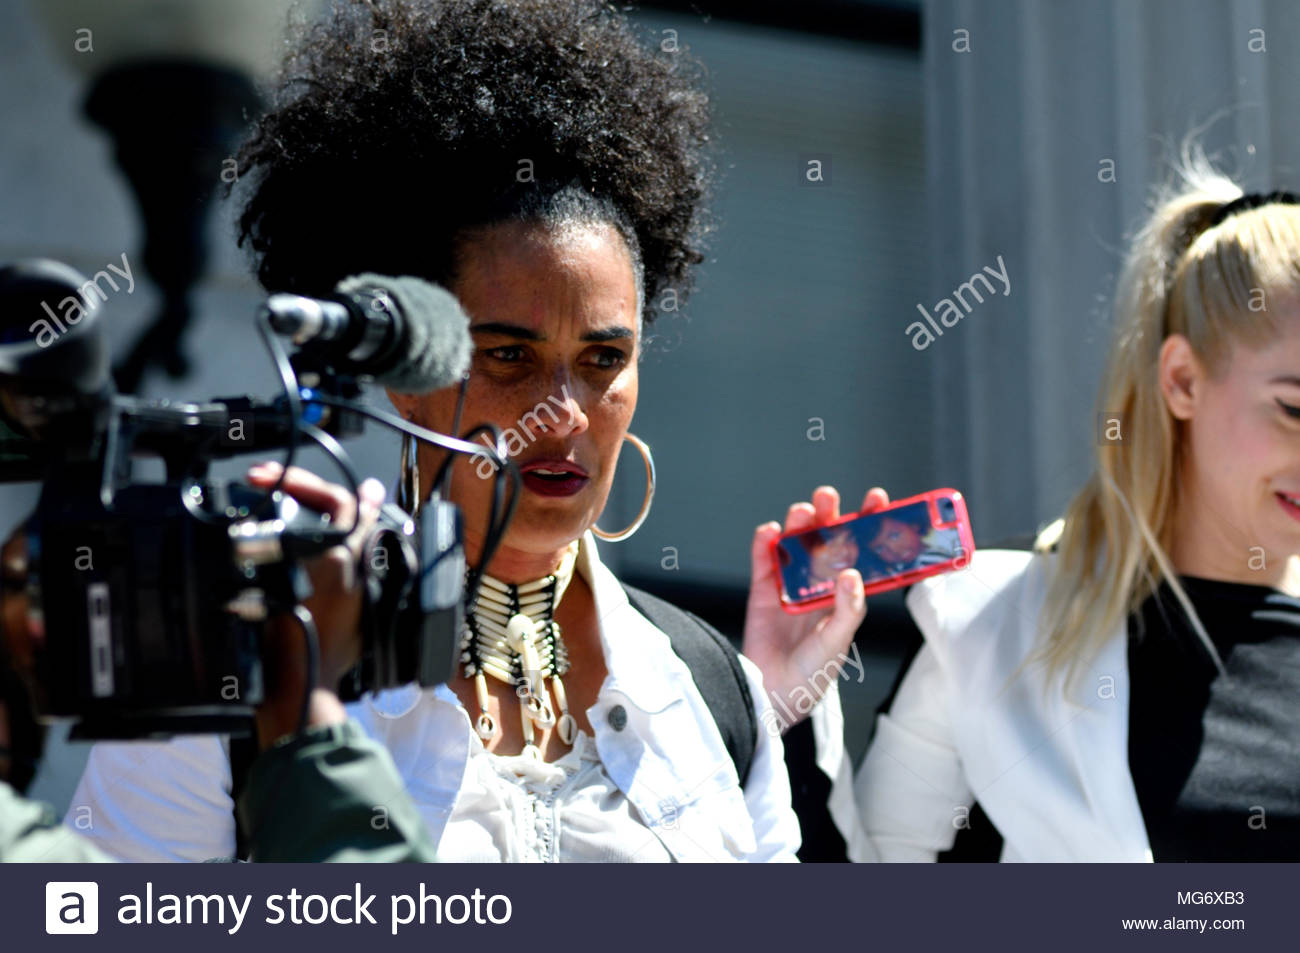 Norristown, USA. 26th Apr, 2018. Scenes outside the court house after the guilty verdict in the Bill Cosby sexual assault trial, at Montgomery County Court House in Norristown, PA, USA, on April 26, 2018. Credit: Bastiaan Slabbers/Alamy Live News - Stock Image